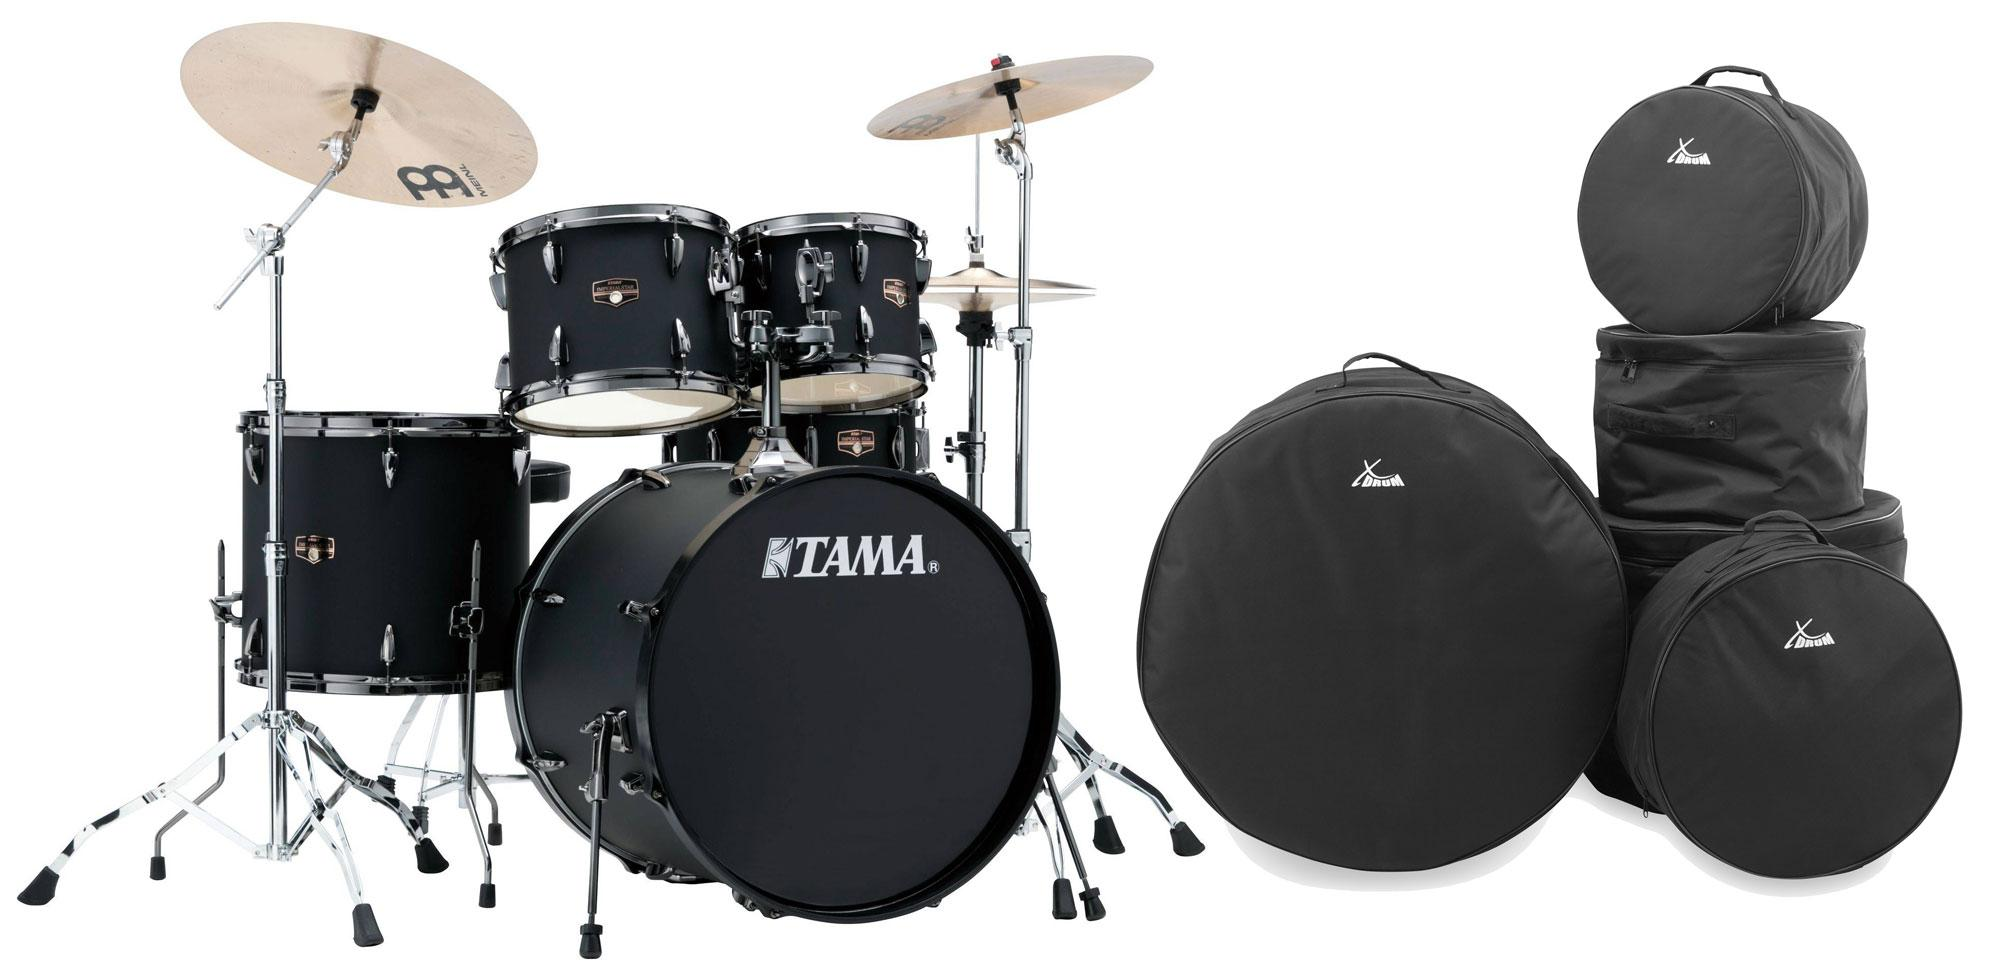 Tama IP52KH6N BBOB Imperialstar Drumkit Blacked Out Black Set inkl. Gigbags